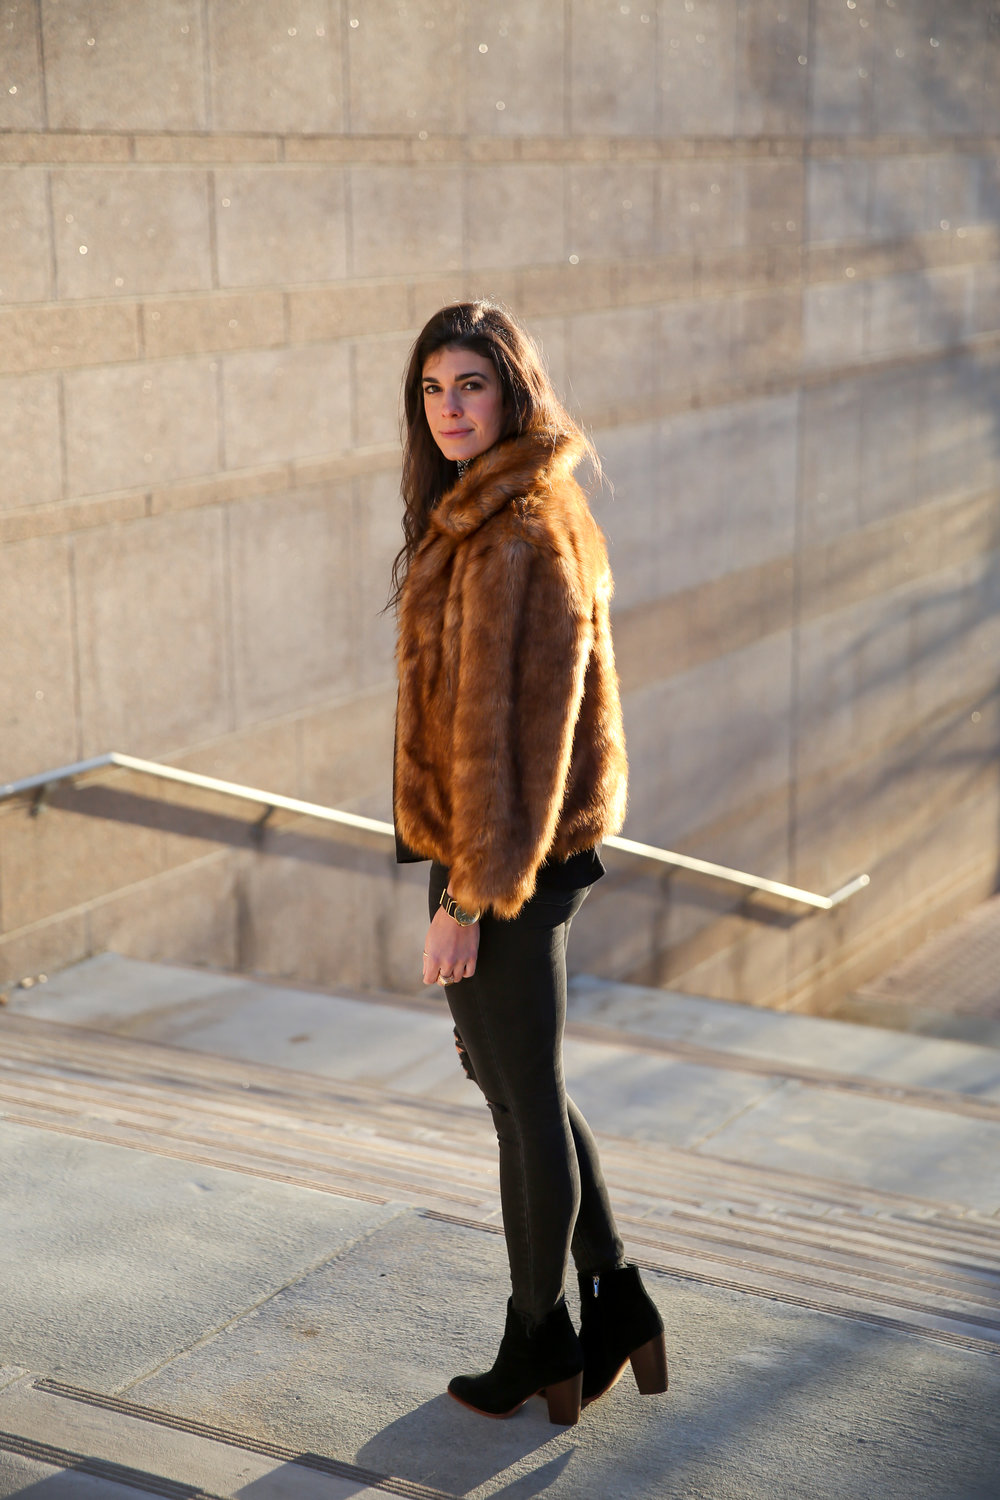 lauren-schwaiger-style-blogger-winter-fashion-faux-fur-jacket.jpg